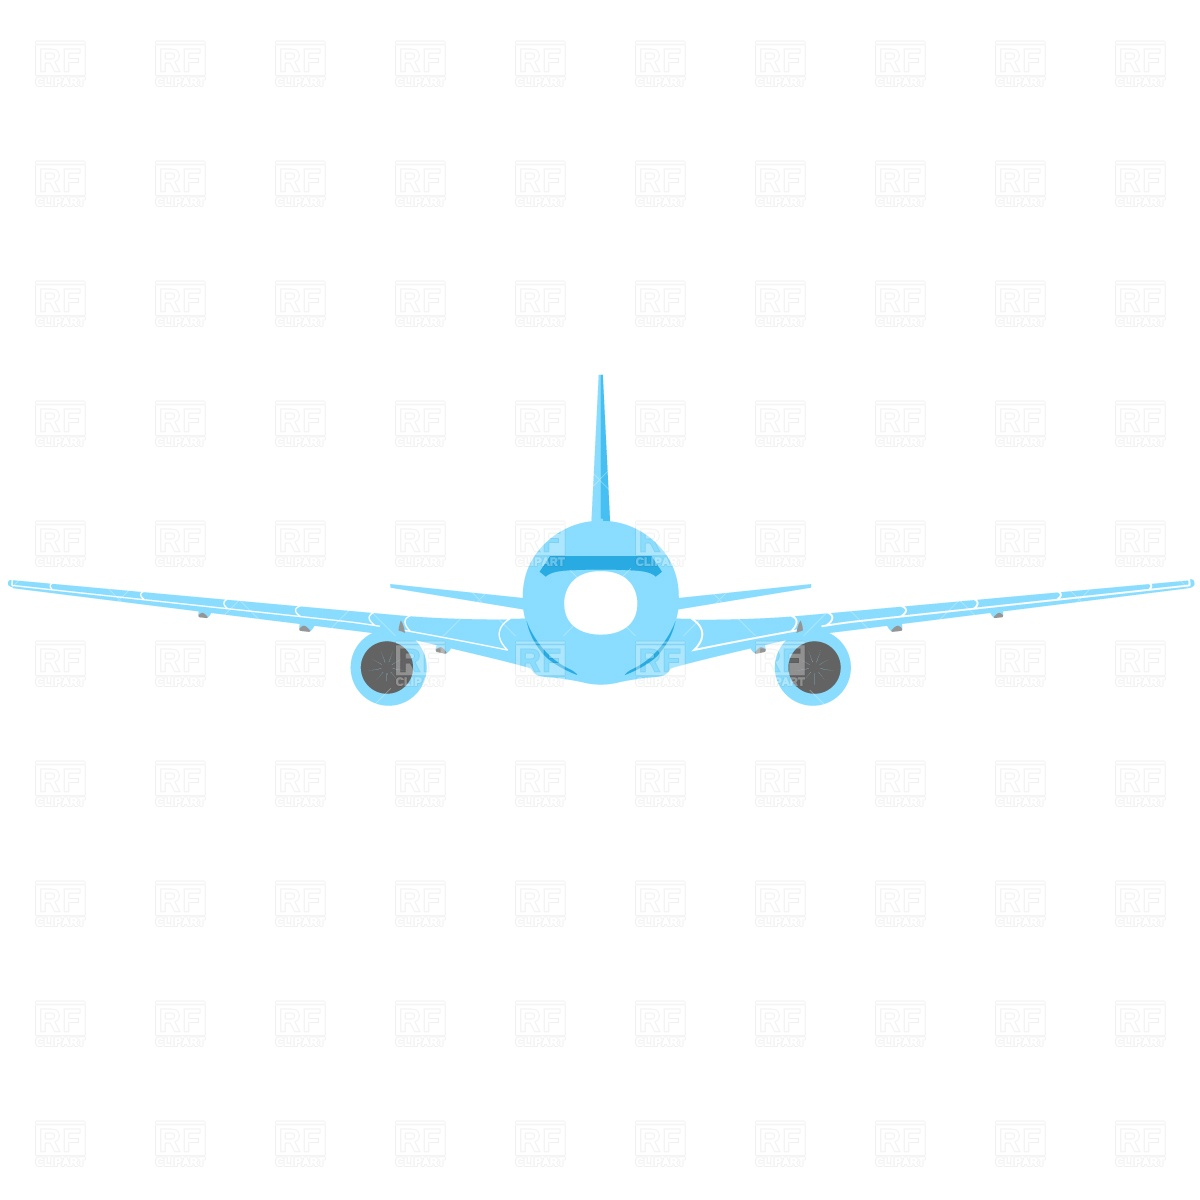 Passenger aircraft, front view Vector Image #722.